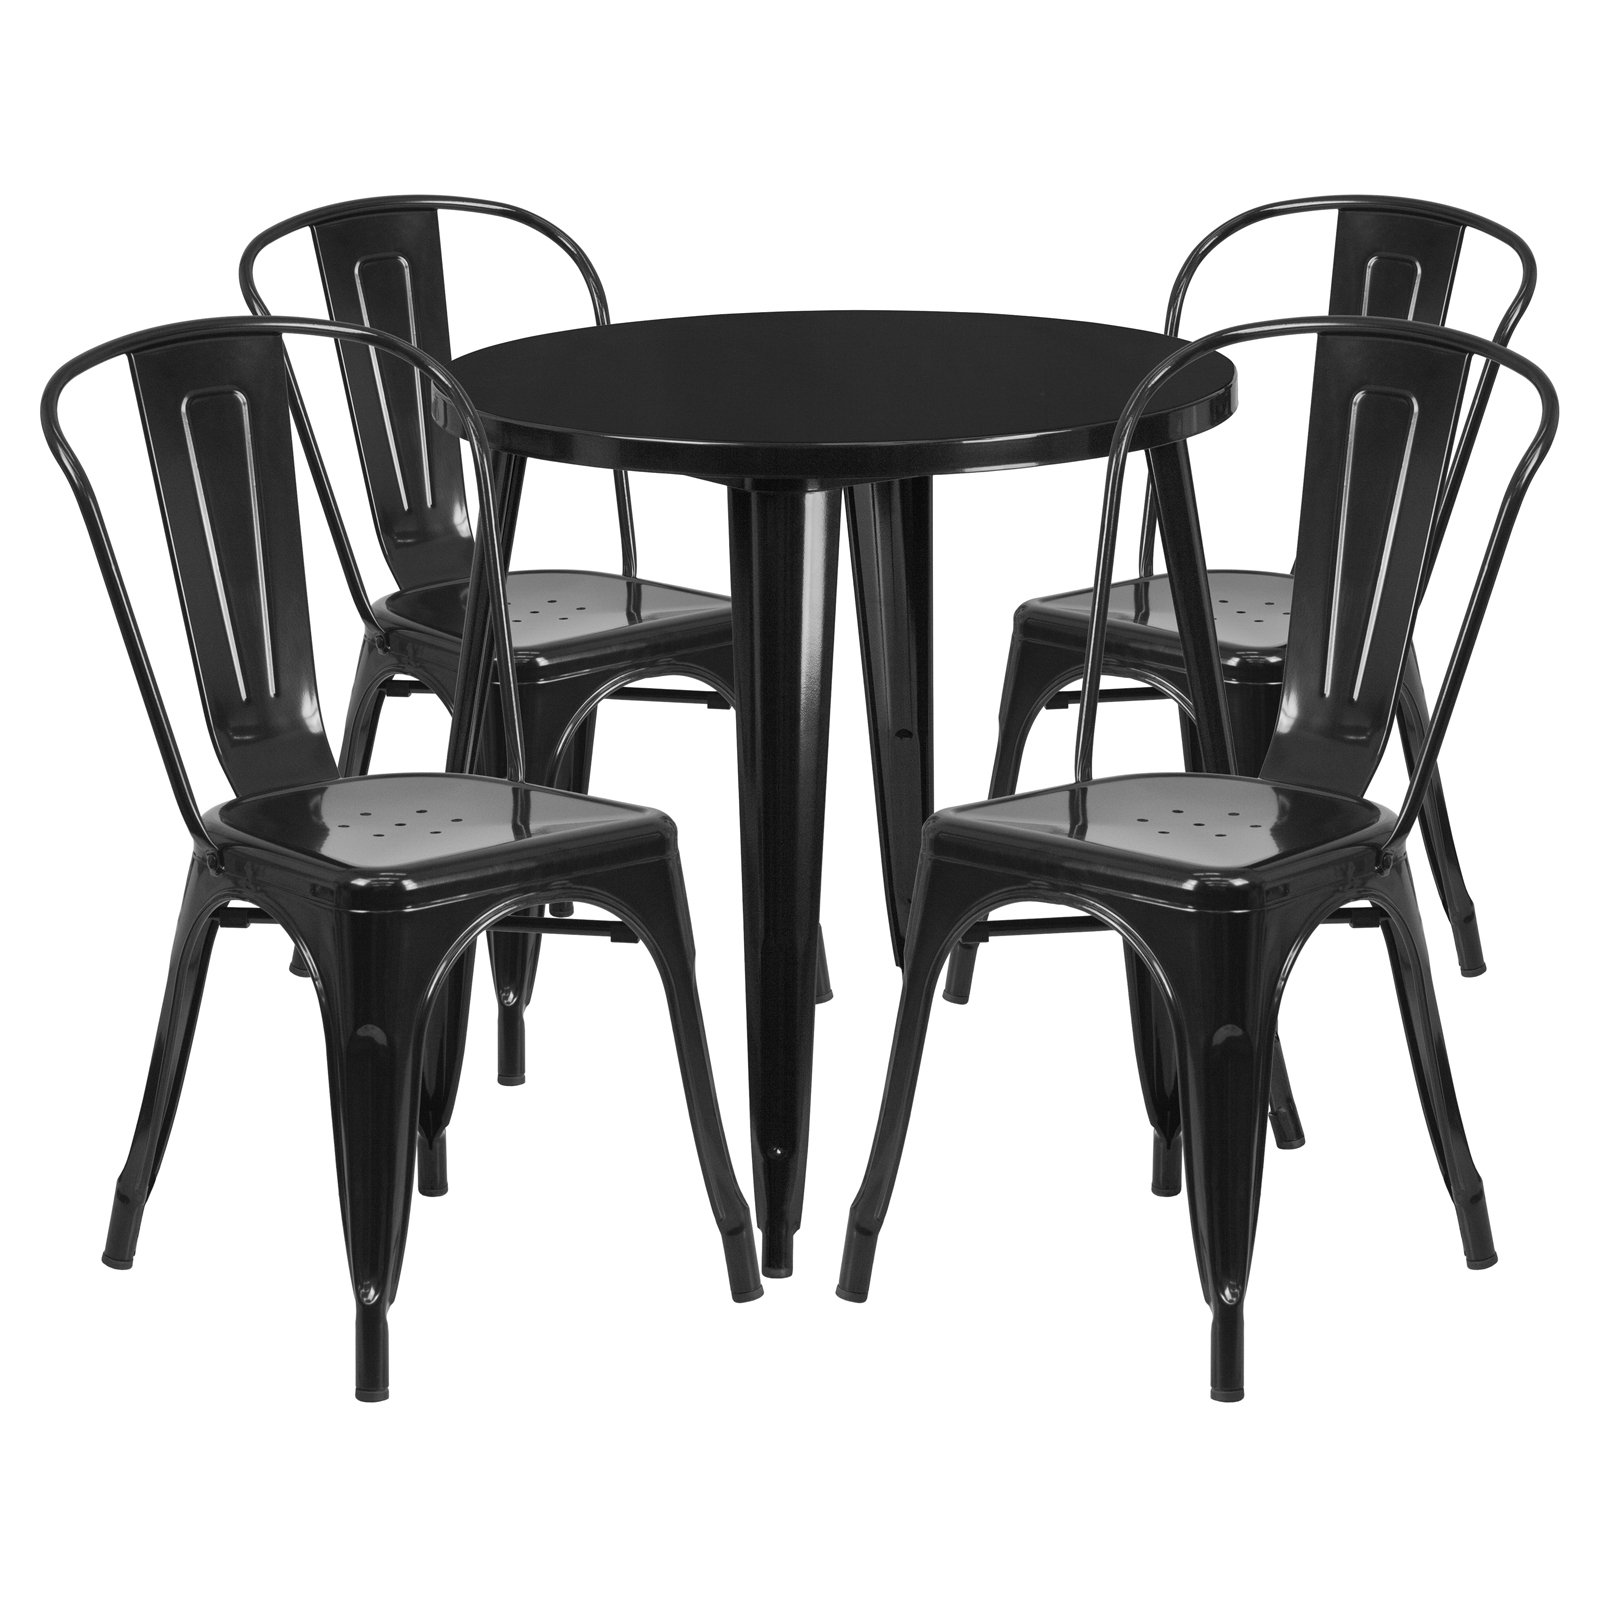 "Flash Furniture 30"" Round Metal Indoor-Outdoor Table Set with 4 Cafe Chairs, Multiple Colors"